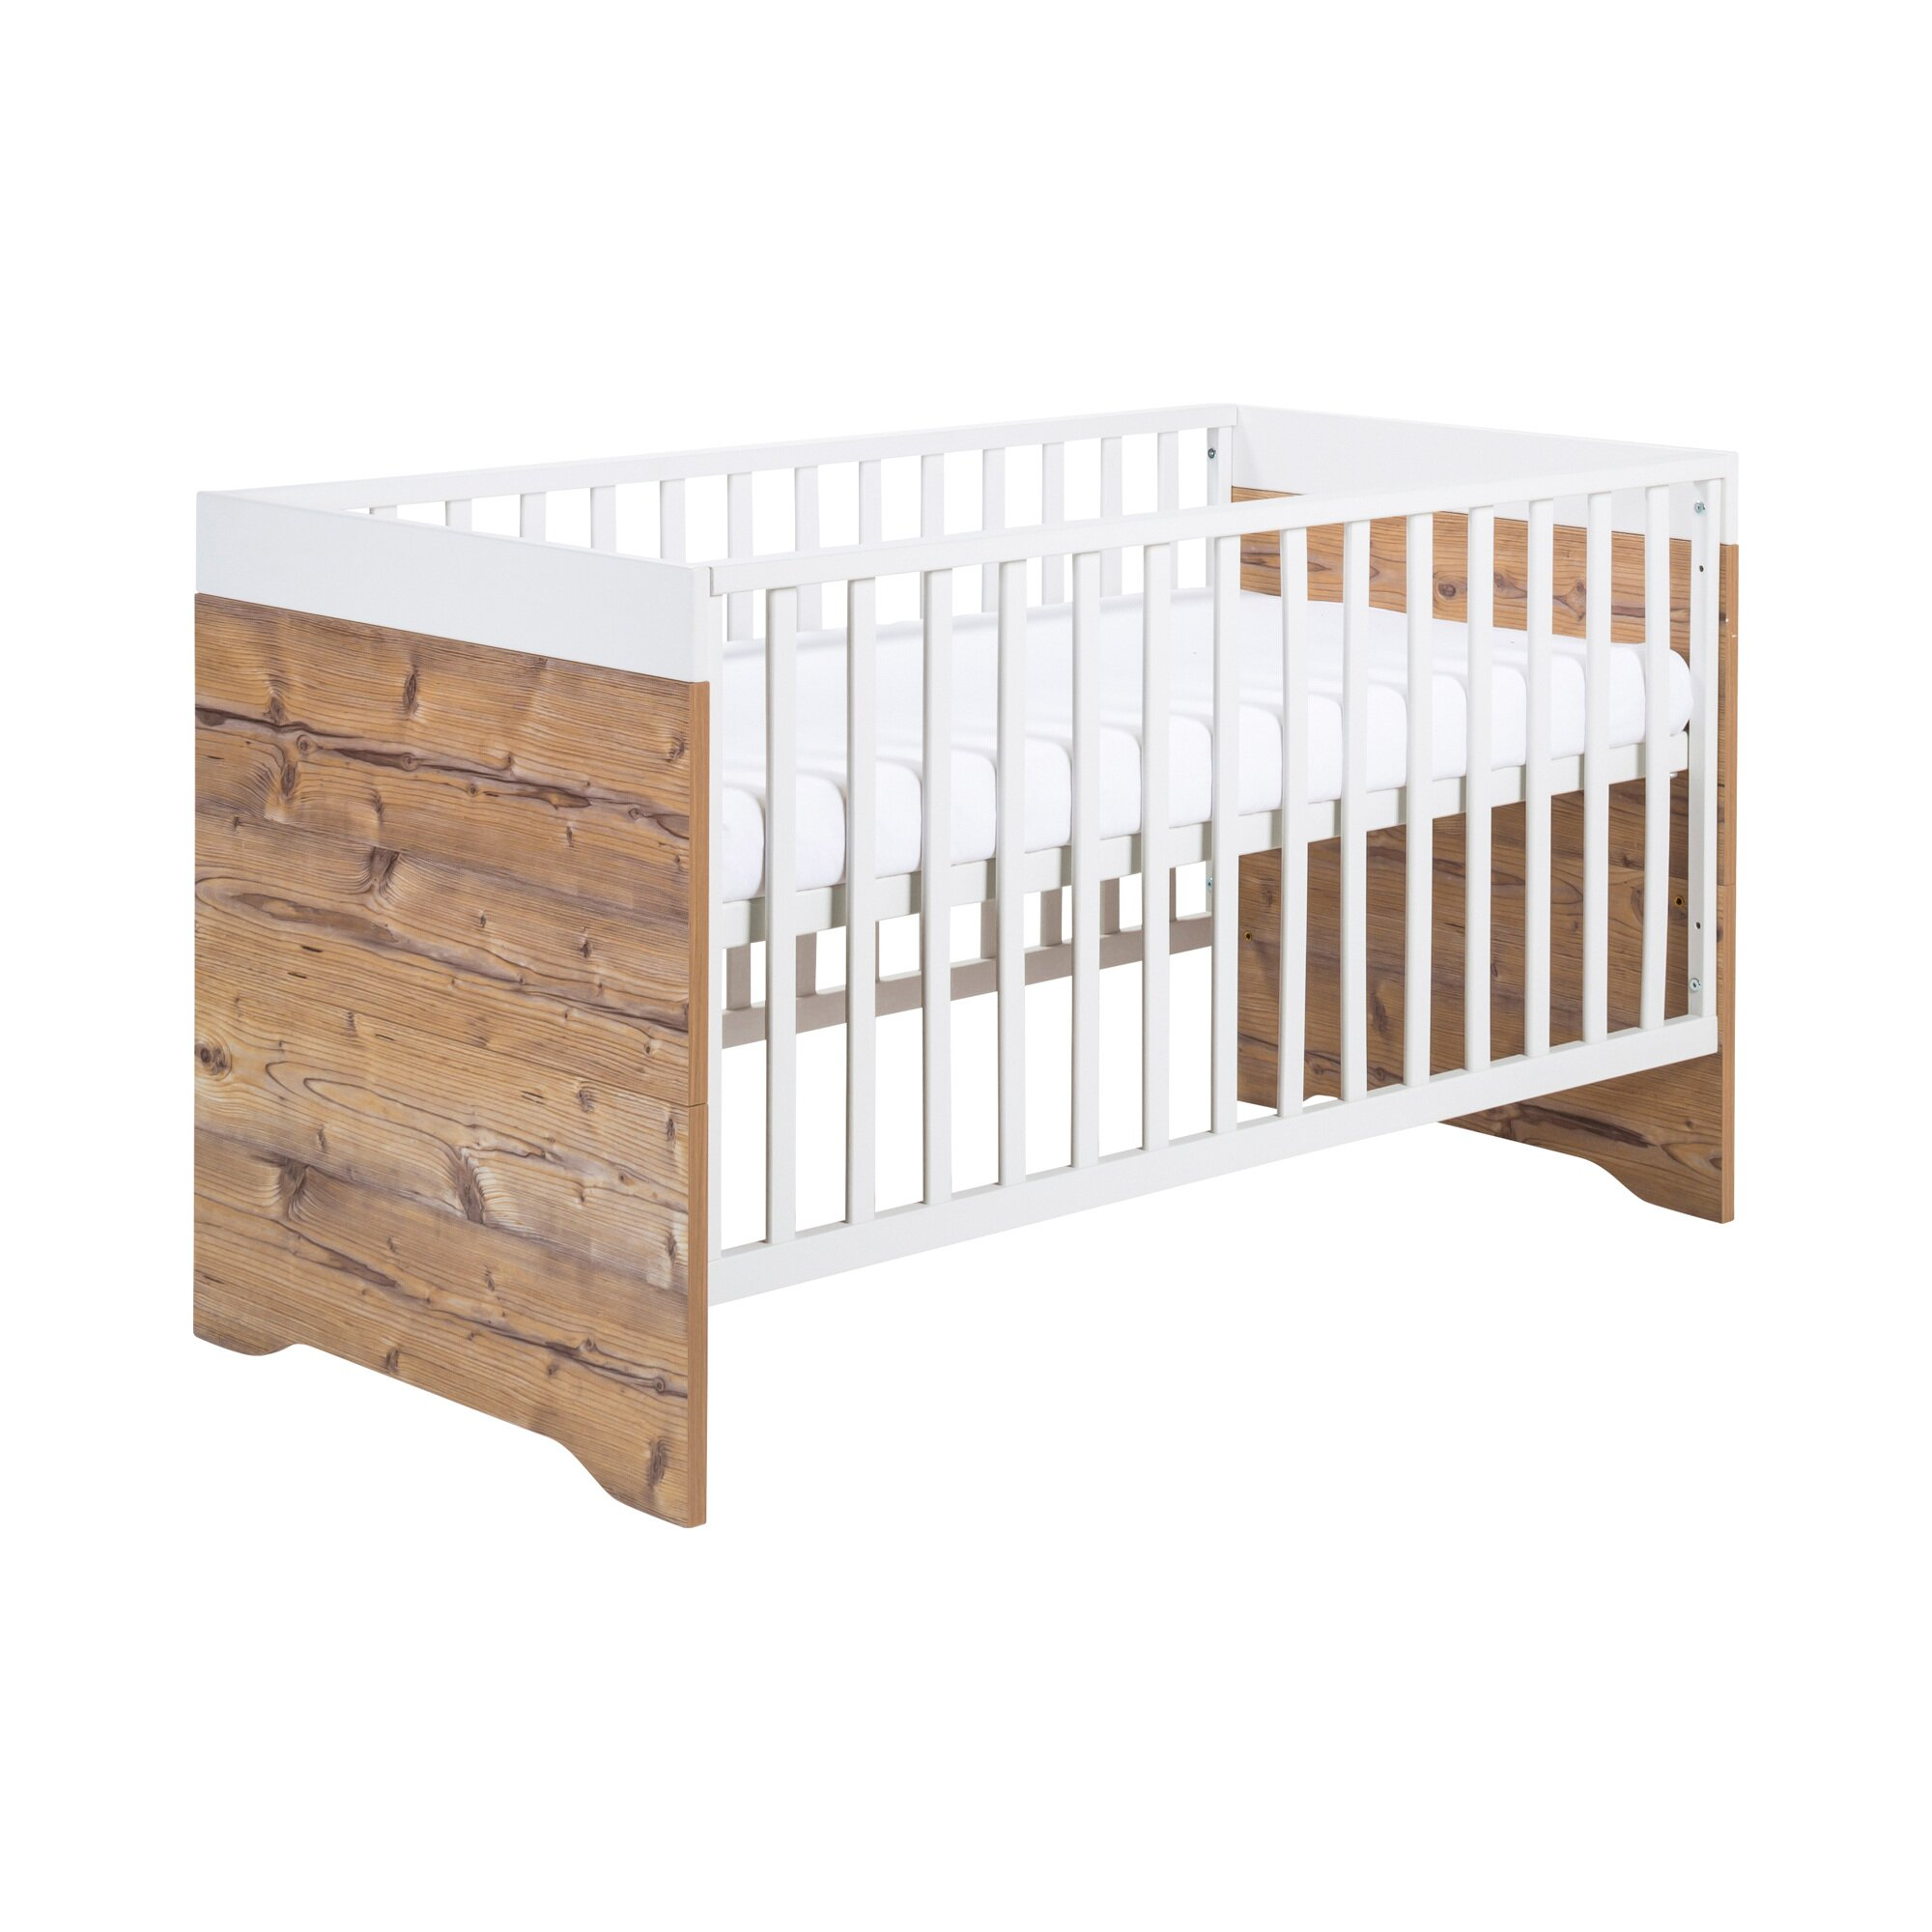 schardt-2-tlg-babyzimmer-timber